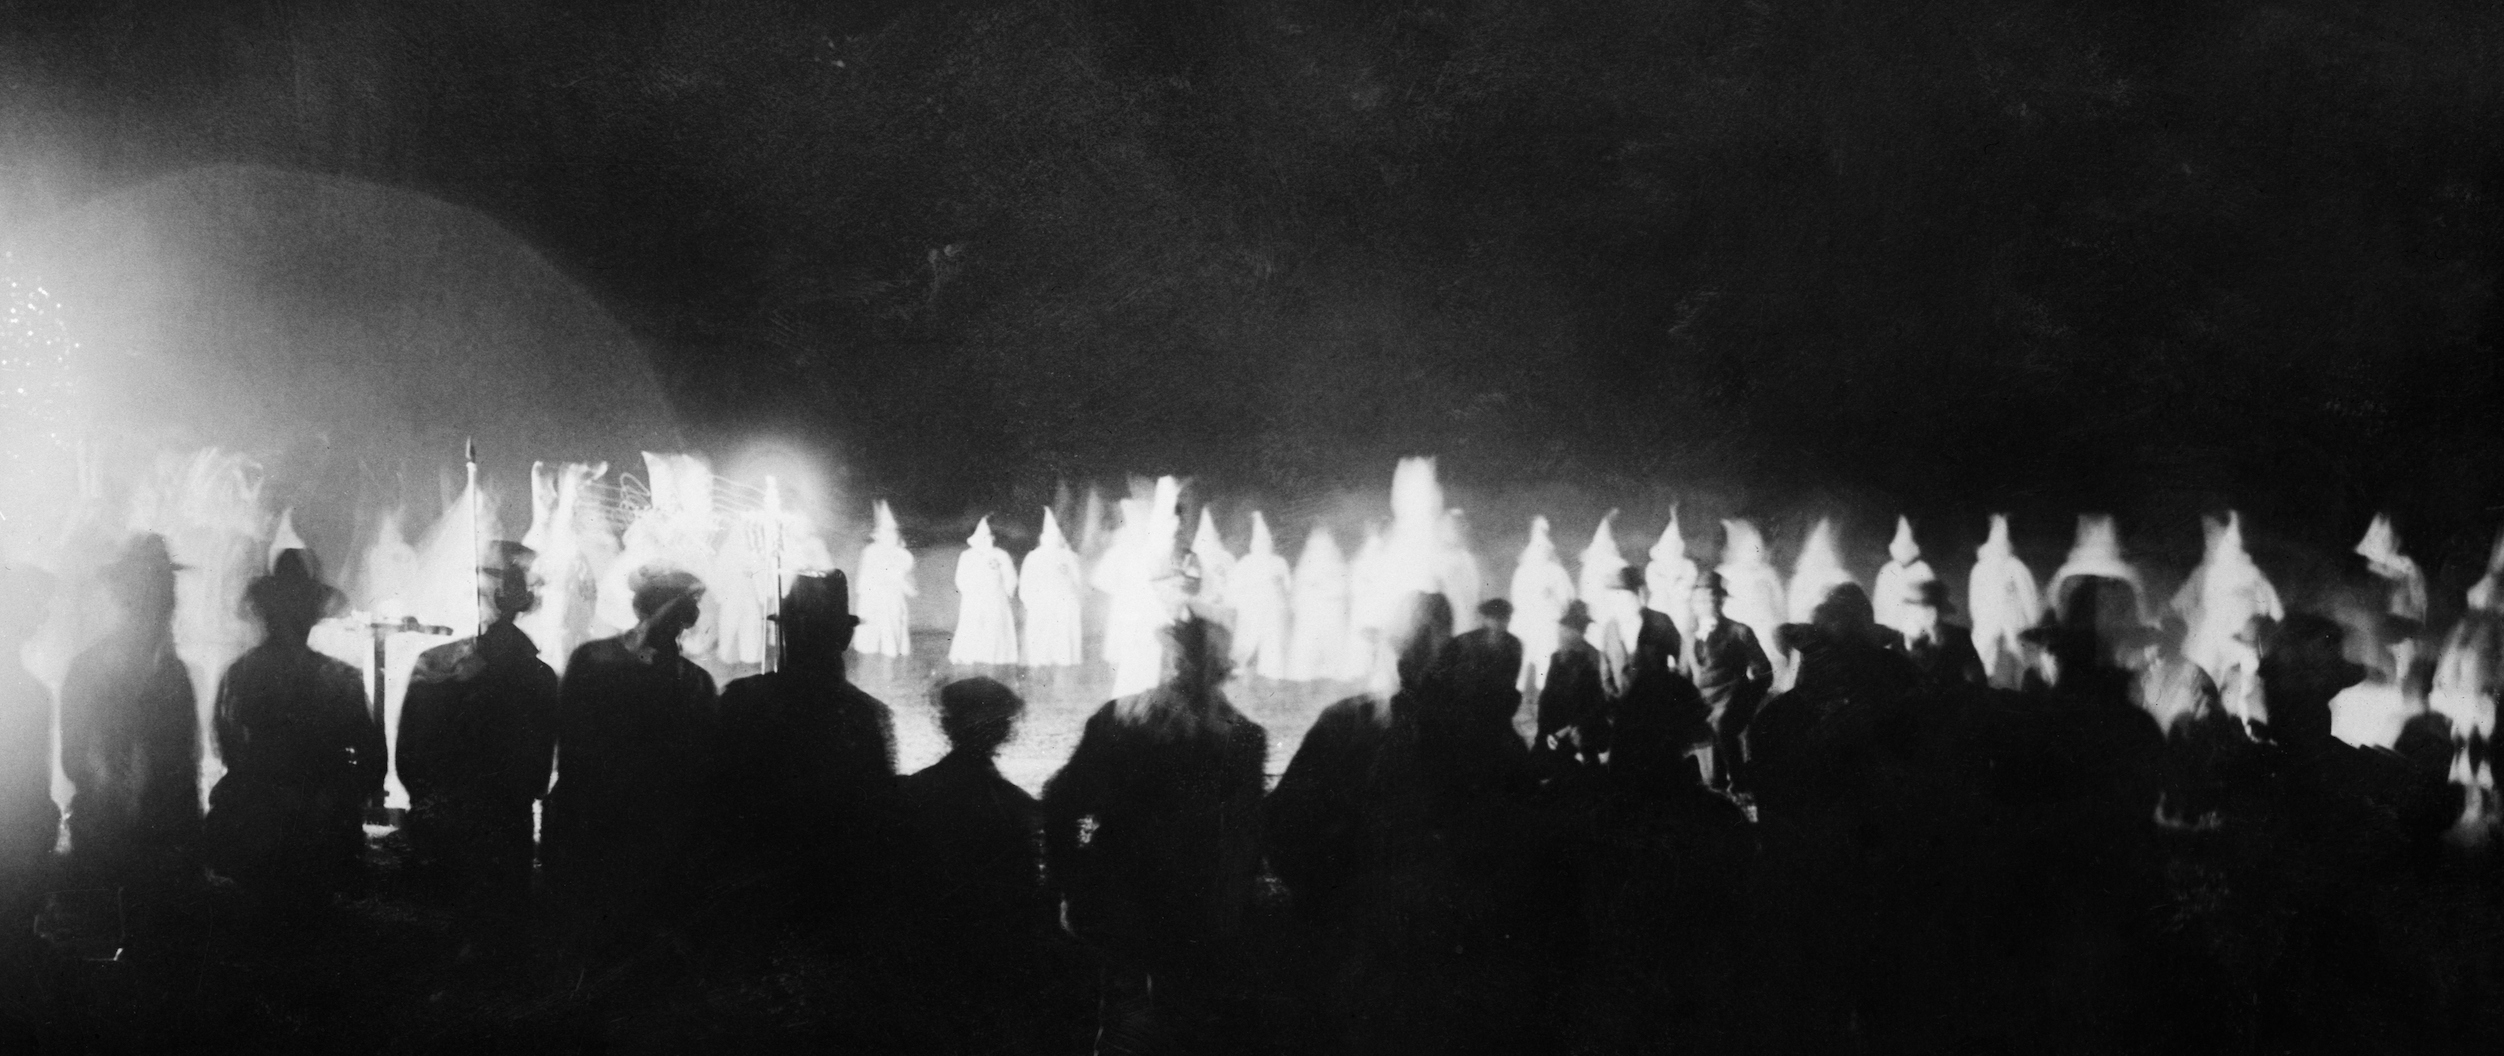 Onlookers watch as the Ku Klux Klan initiates new members at a Miami golf course in the 1920s.